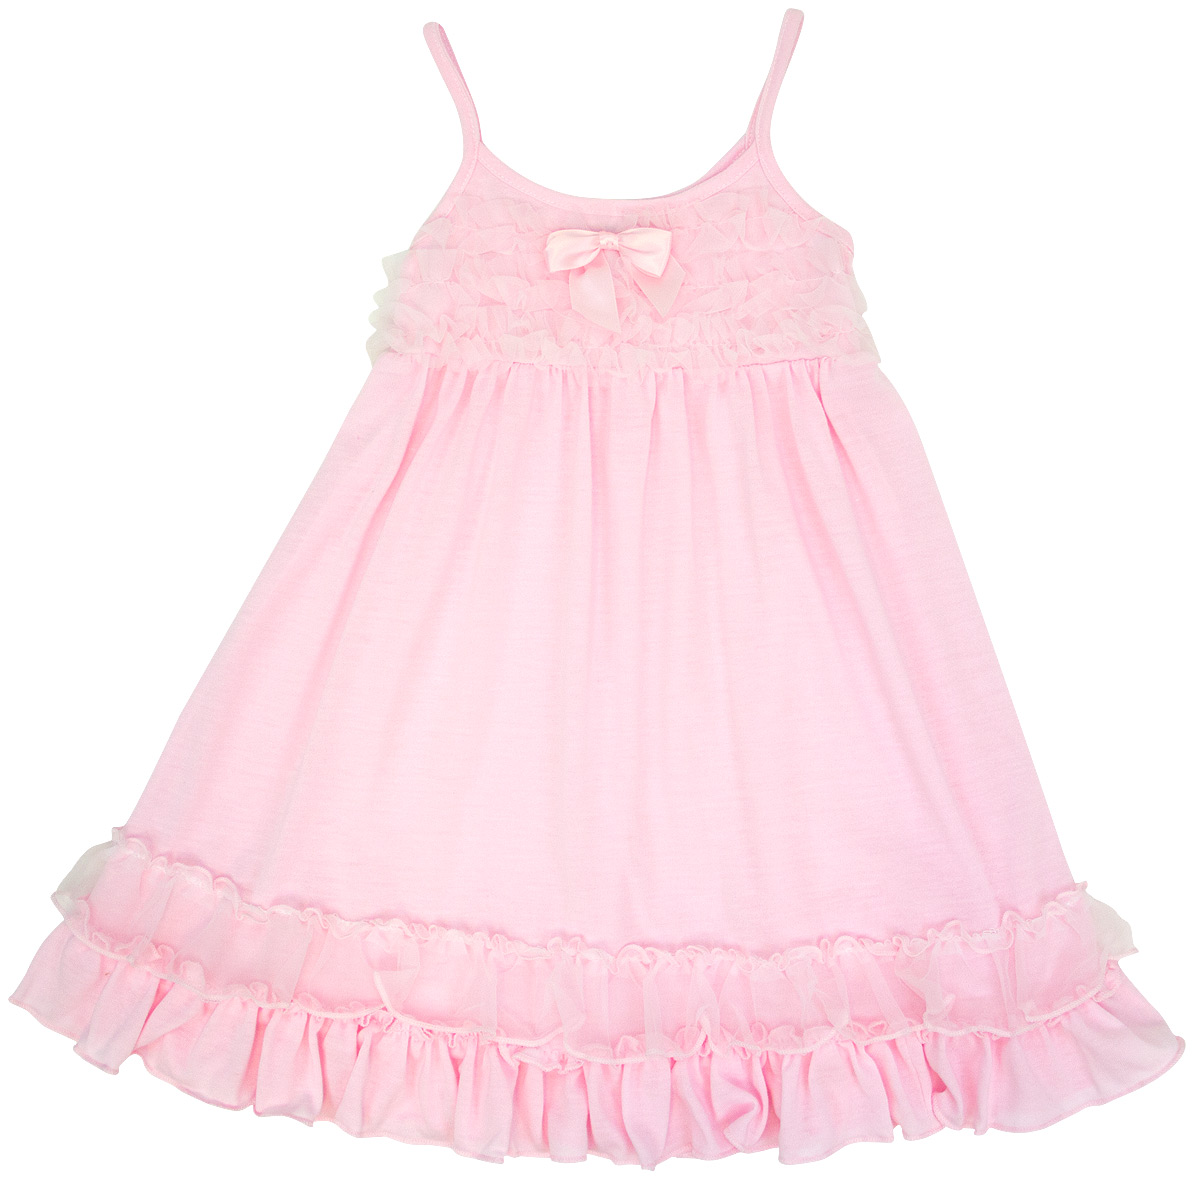 Laura Dare Pink Strappy Gown